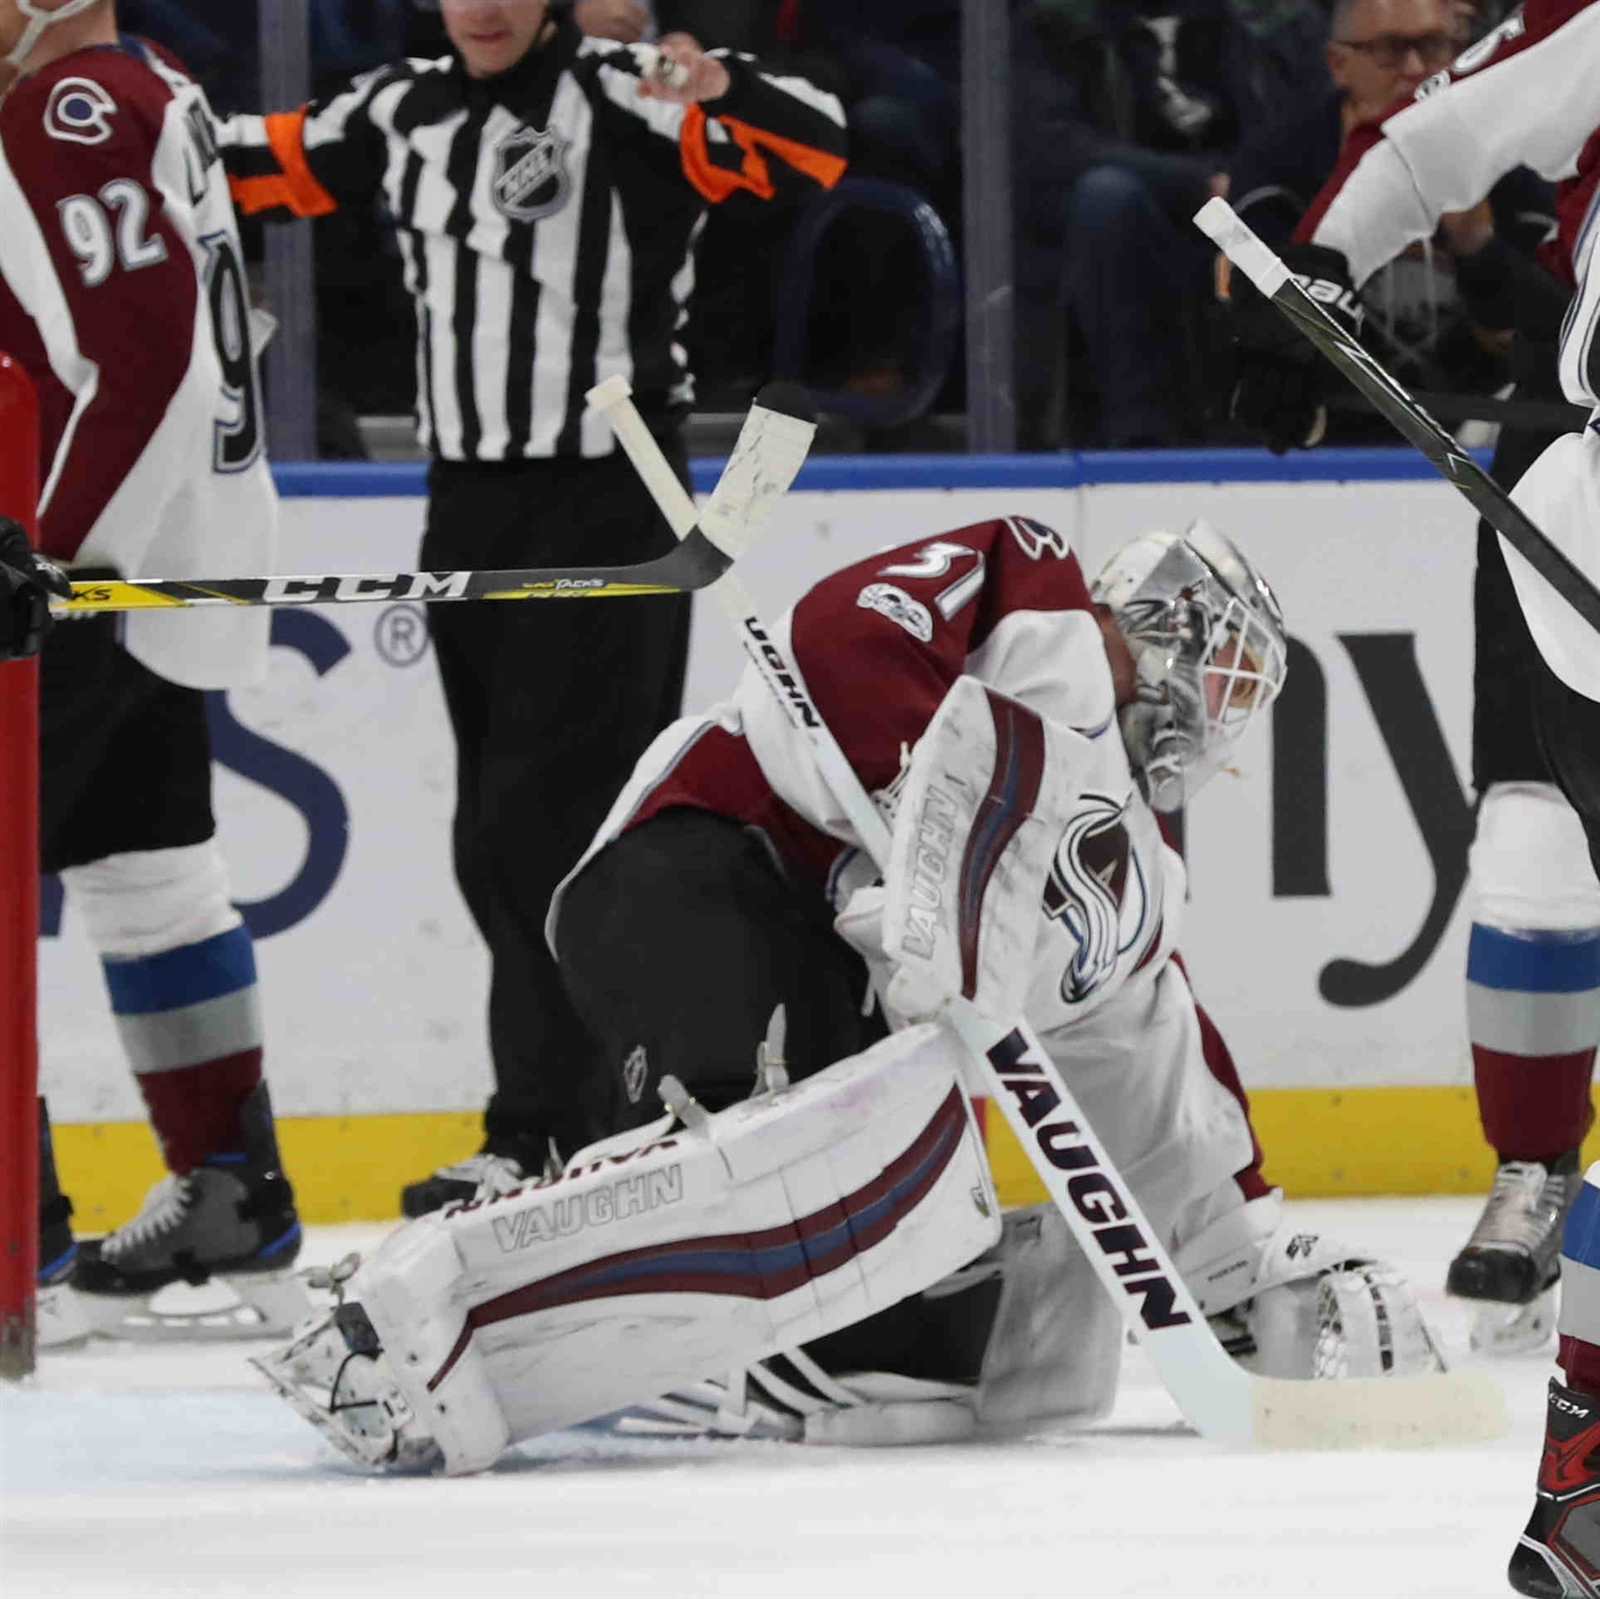 Colorado Avalanche goalie Calvin Pickard (31) makes a save in the first period.